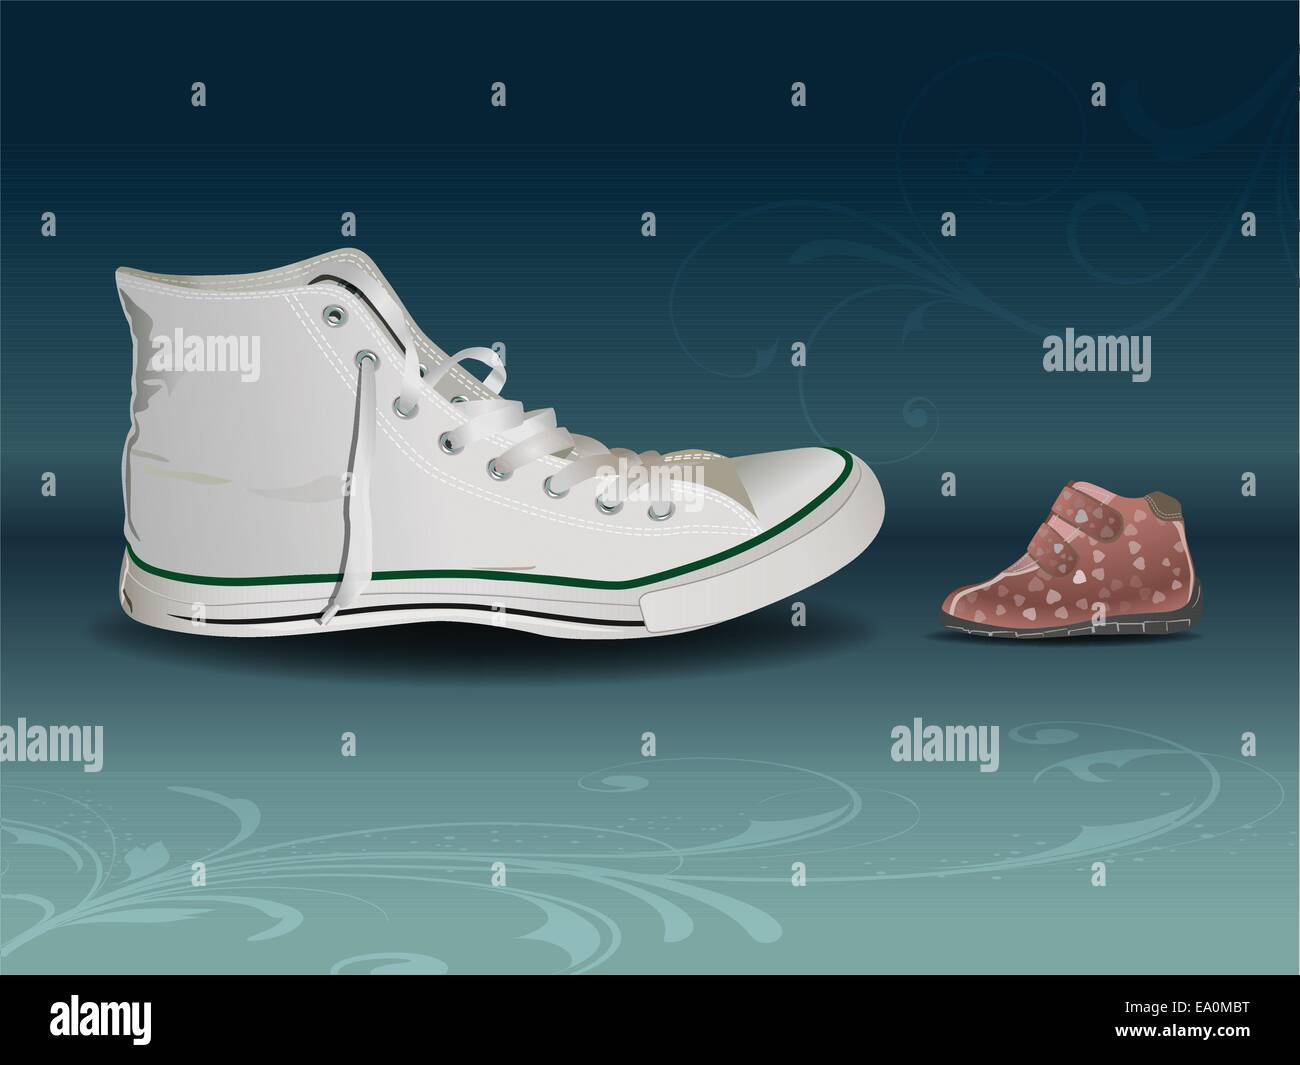 vector conceptual illustration of big sneaker against small baby shoe, eps10 file - Stock Image